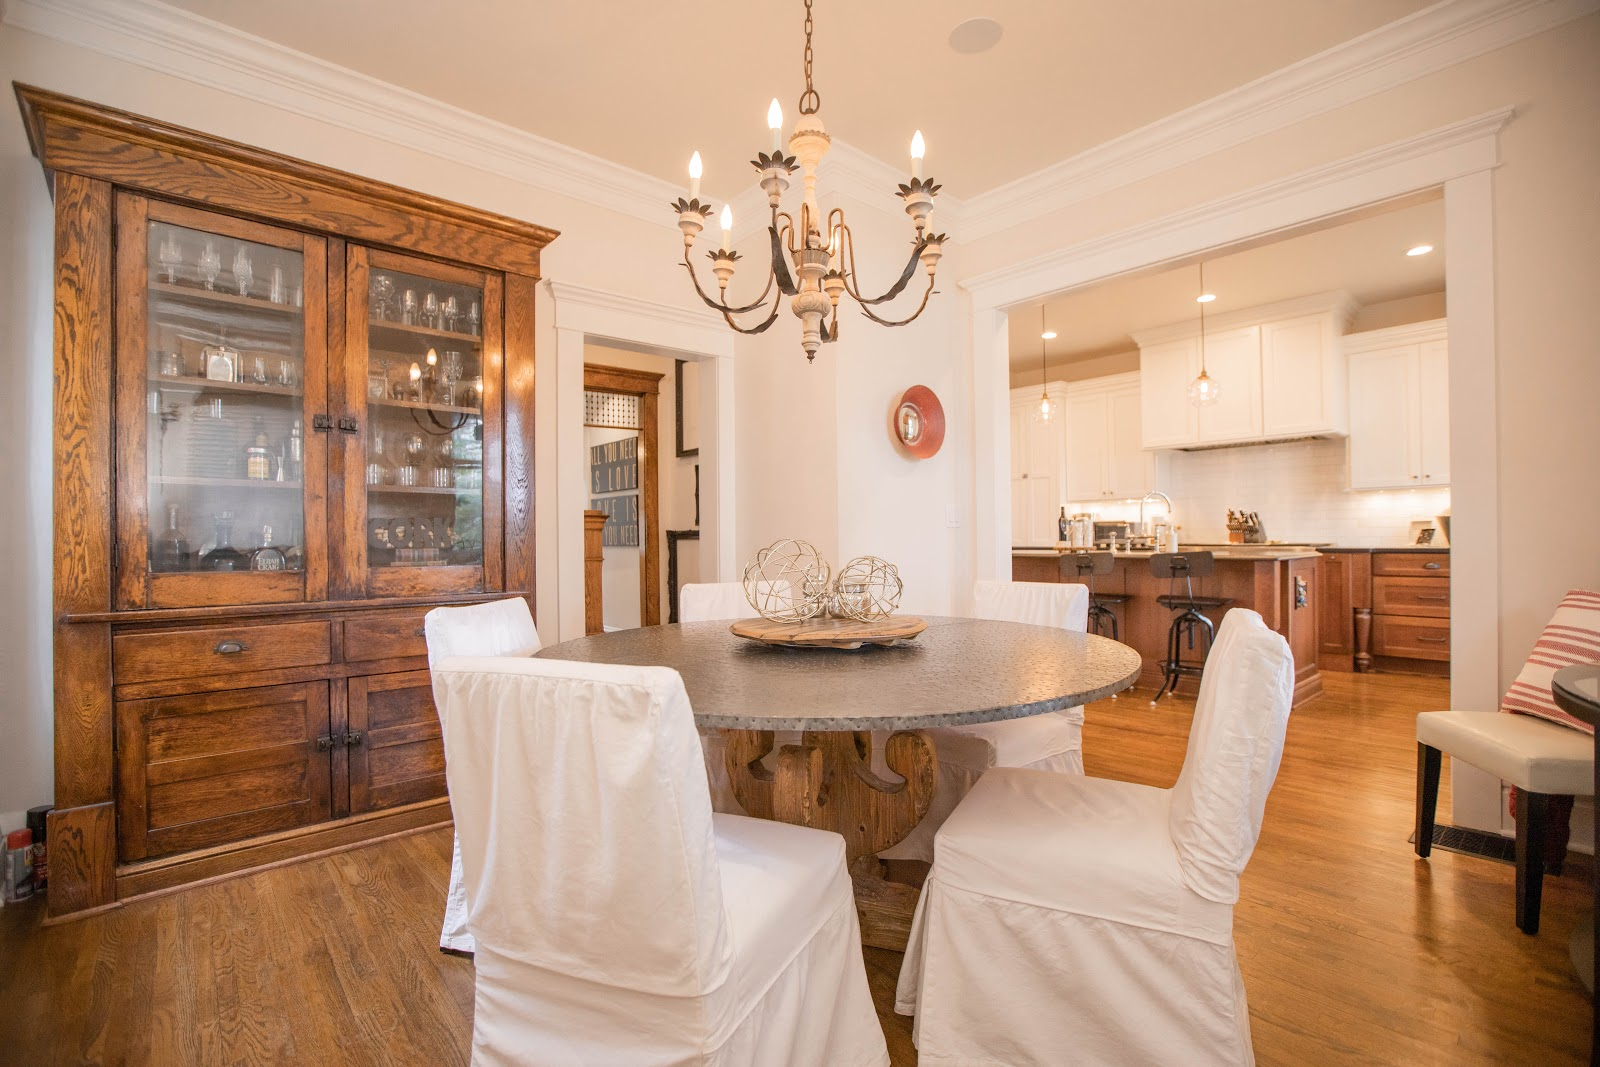 Dining area with white chairs and a chandelier